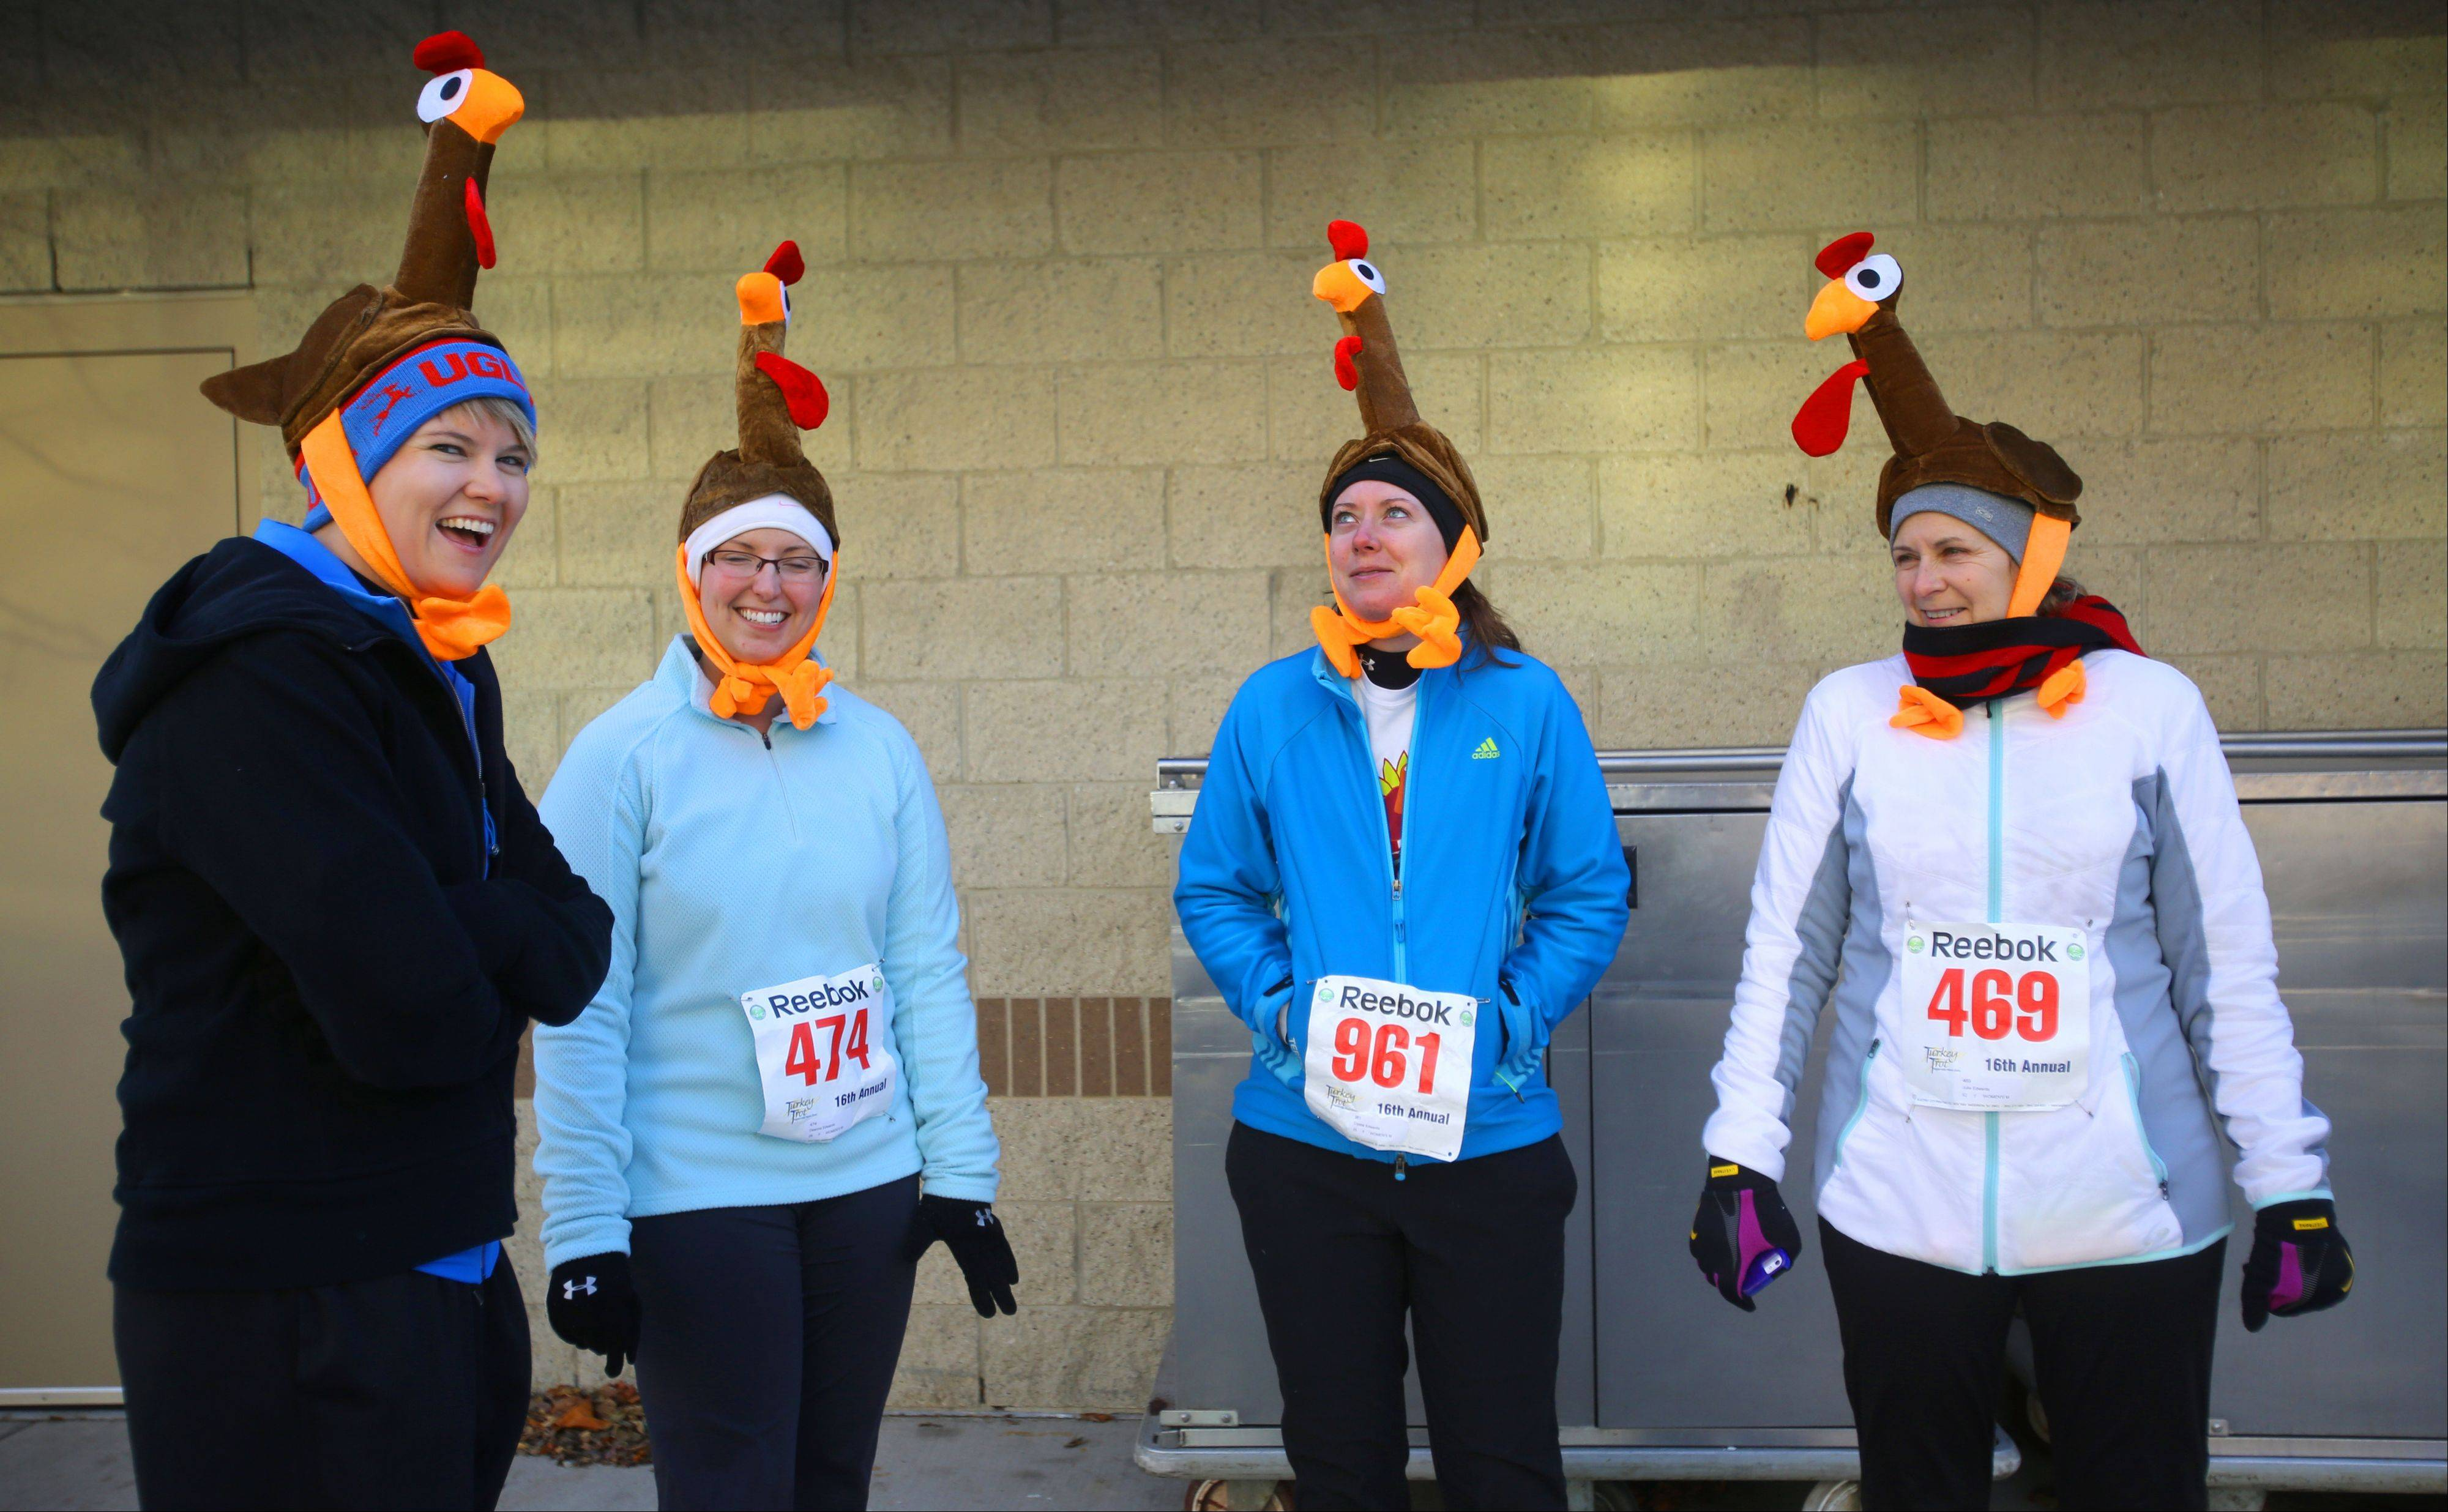 Amber Schieve of Madison, Wis., left, Deanna and Crystal Edwards of Aurora and their mother Julie Edwards, right, of Maple Park. participated in Thursday's Naperville run.